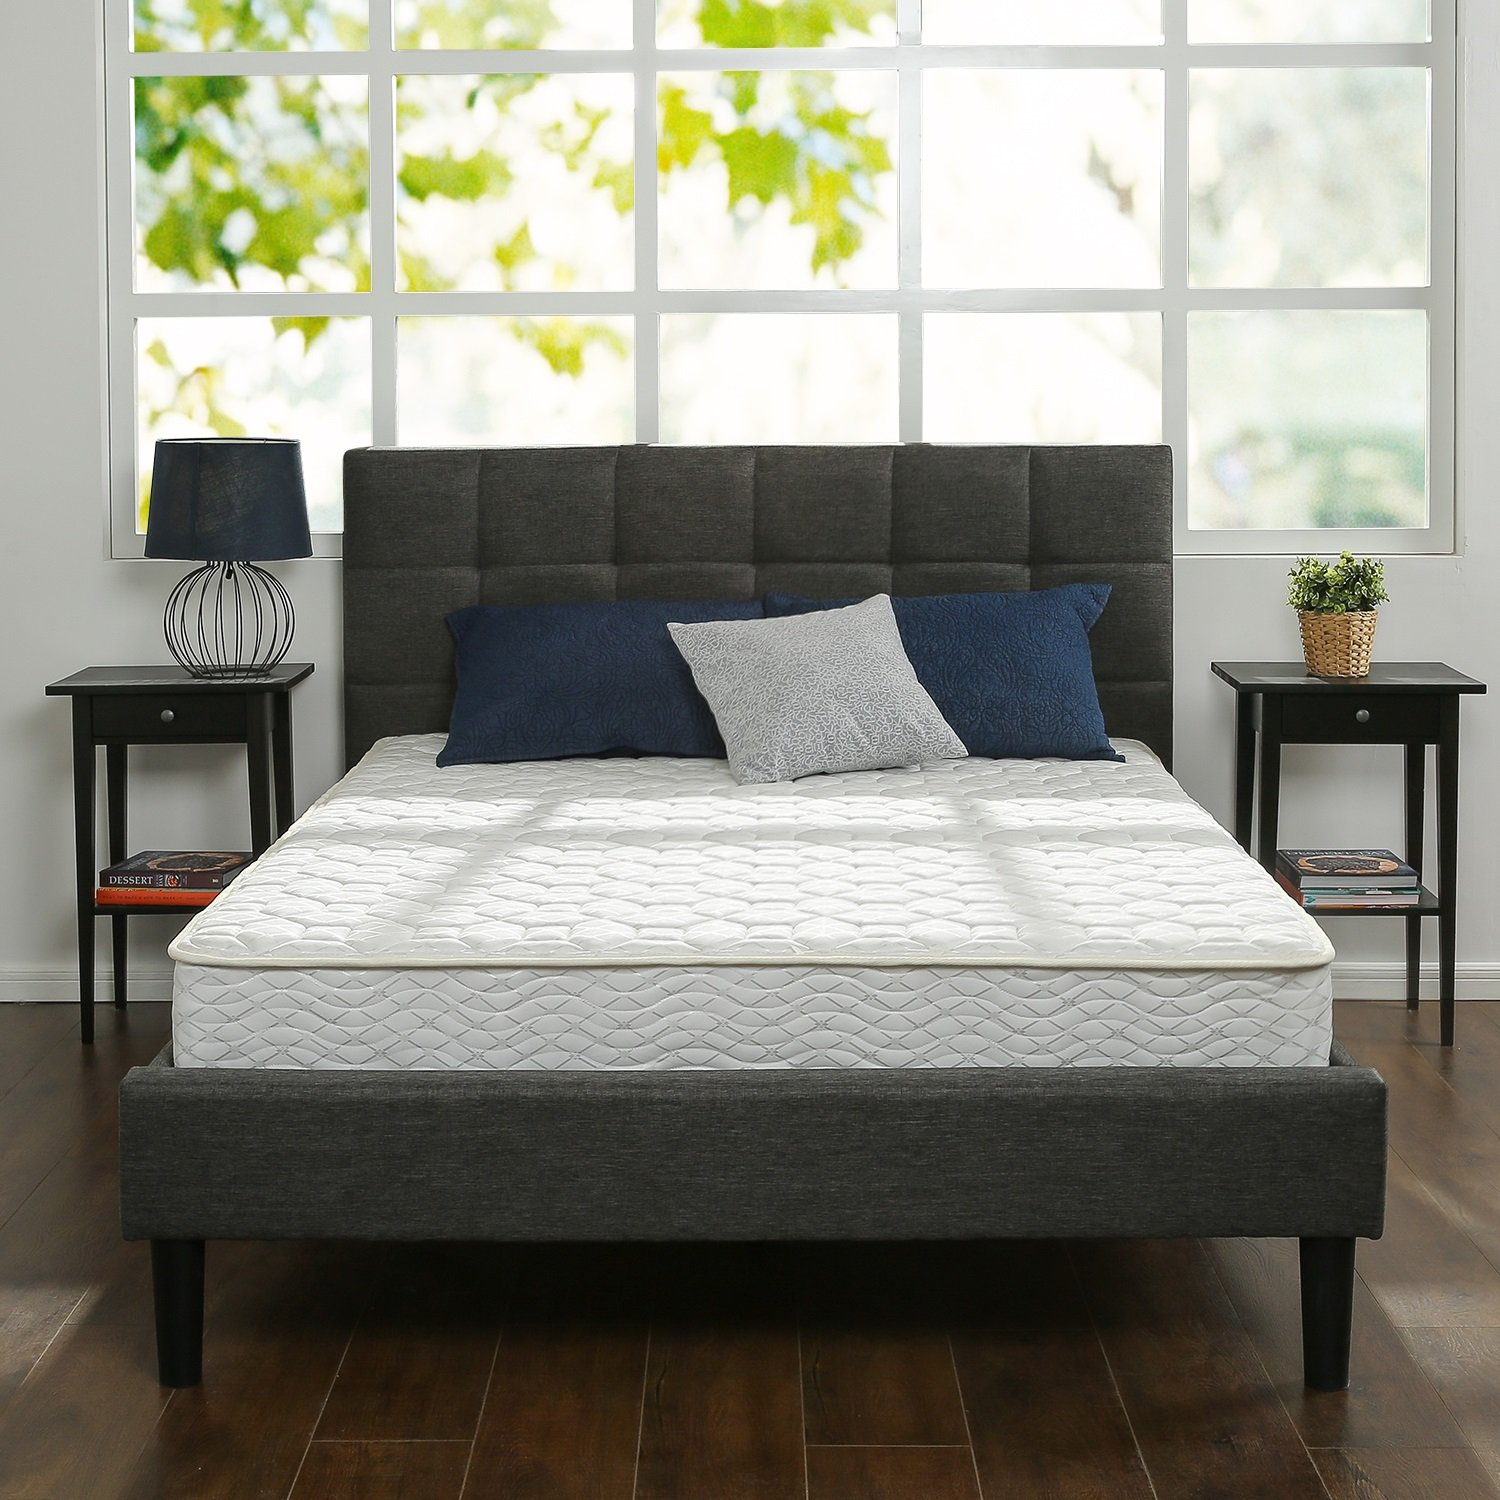 Zinus Hybrid Green Mattress